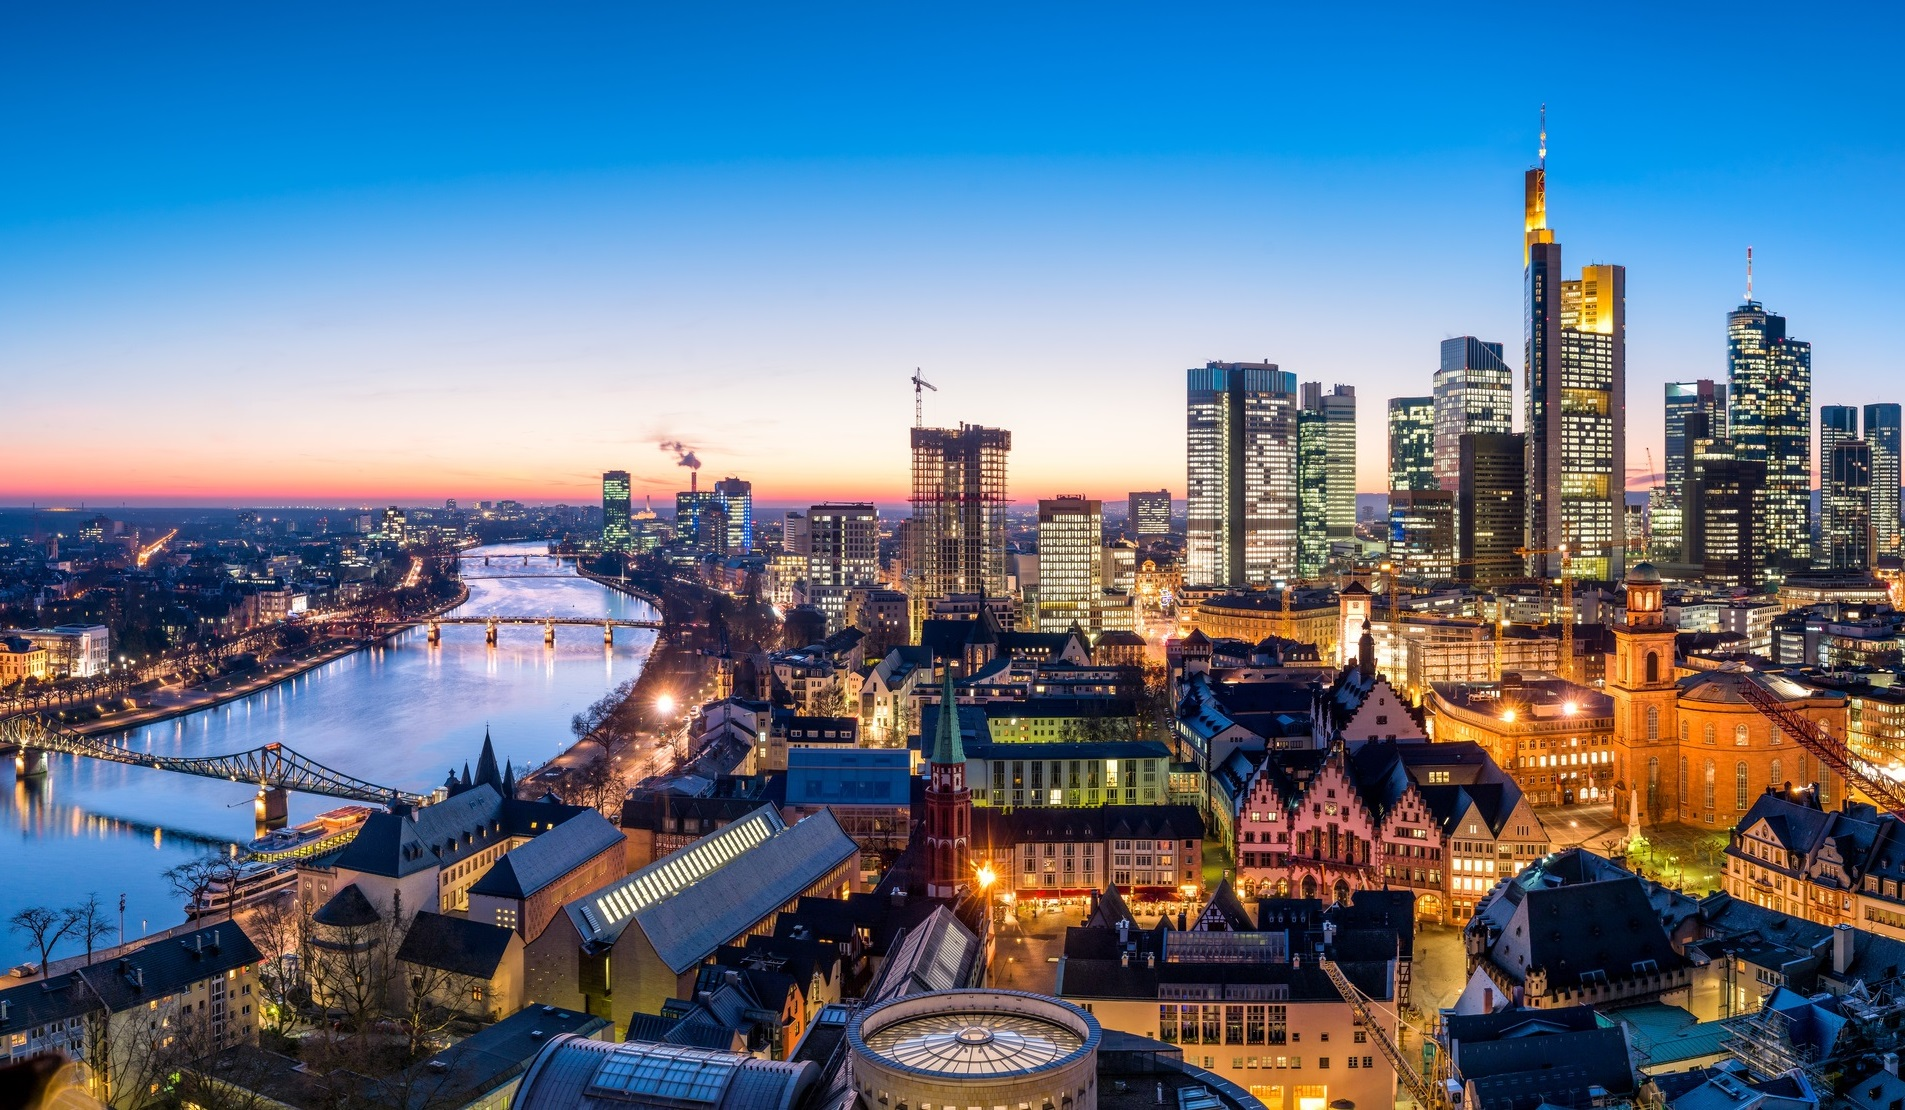 Ordnungssinn Frankfurt frankfurt frankfurt frankfurt prepares for brexit bankers umaybe